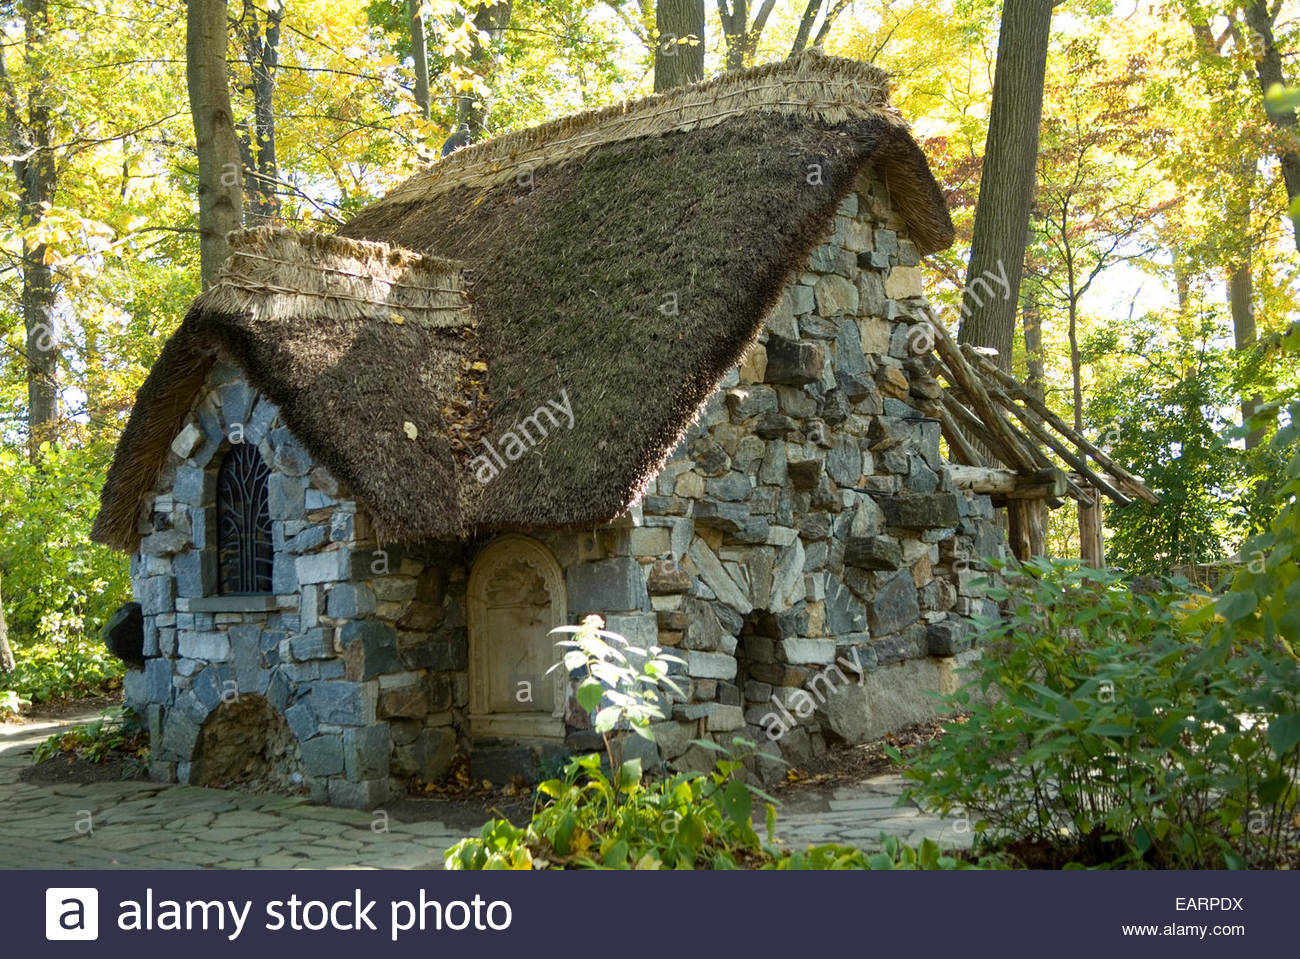 The Faerie Cottage In The Enchanted Woods In The